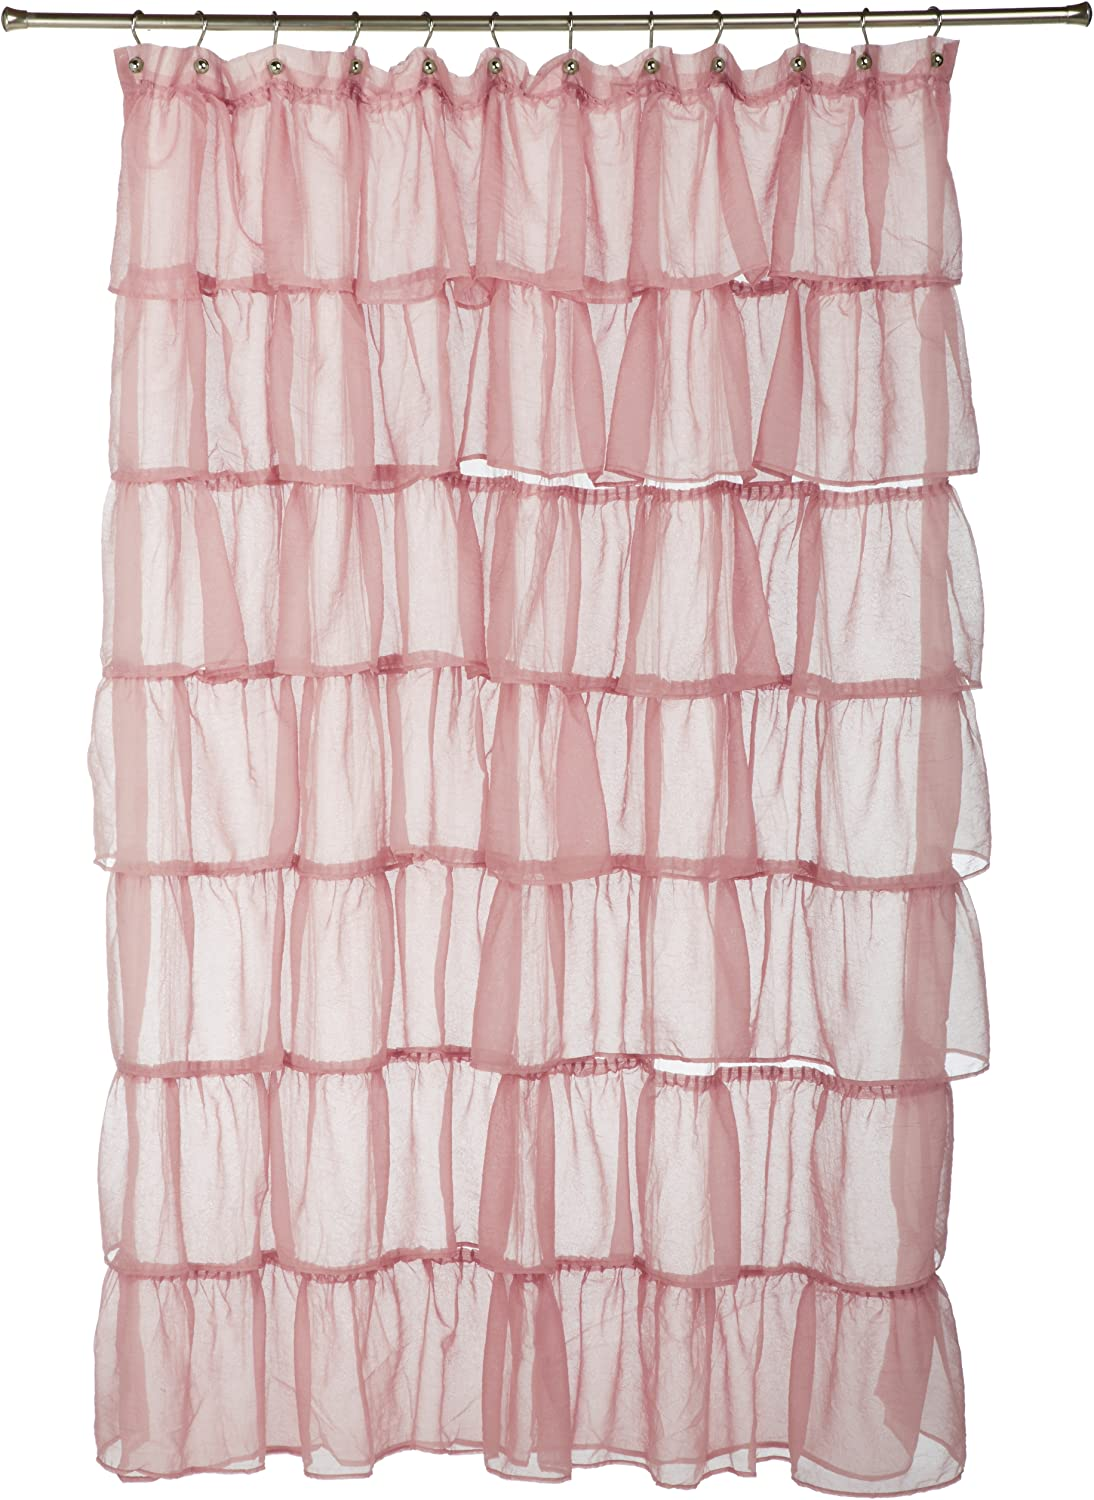 LORRAINE HOME FASHIONS Gypsy Shower Curtain, 70-Inch by 72-Inch, Pink